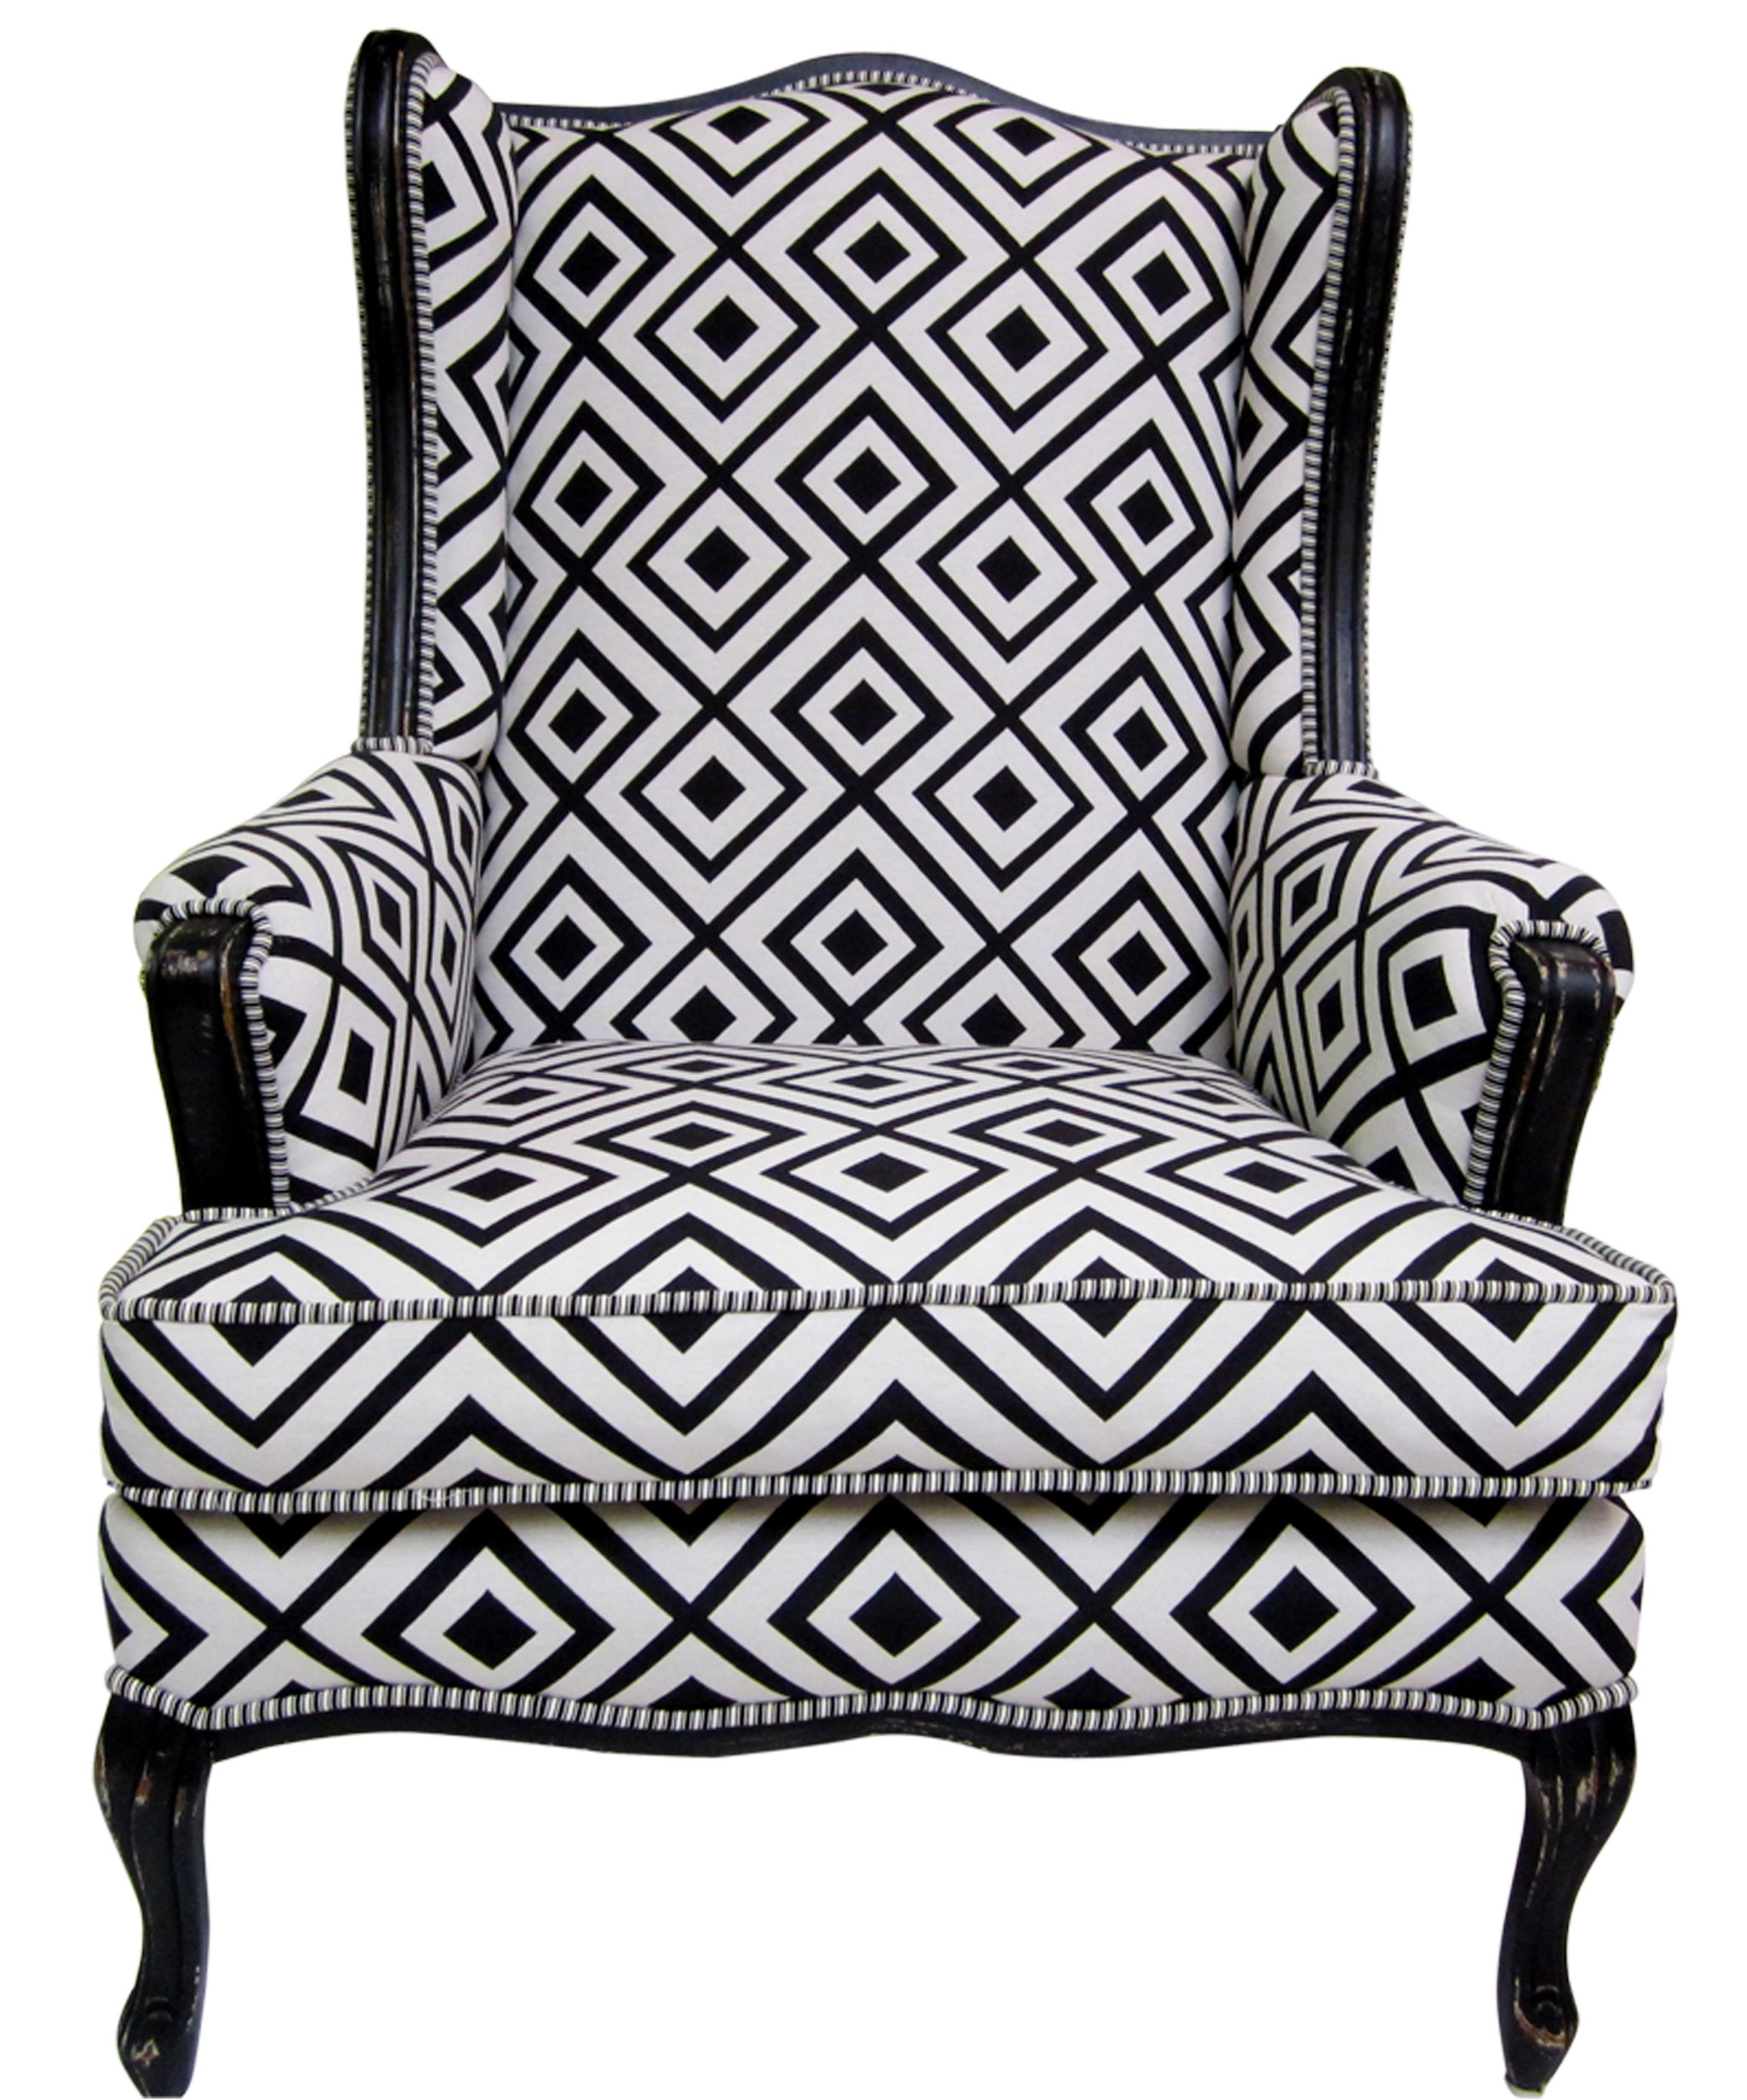 White Wing Chair Black And White Wing Chairs Pricing Black And White Geometric